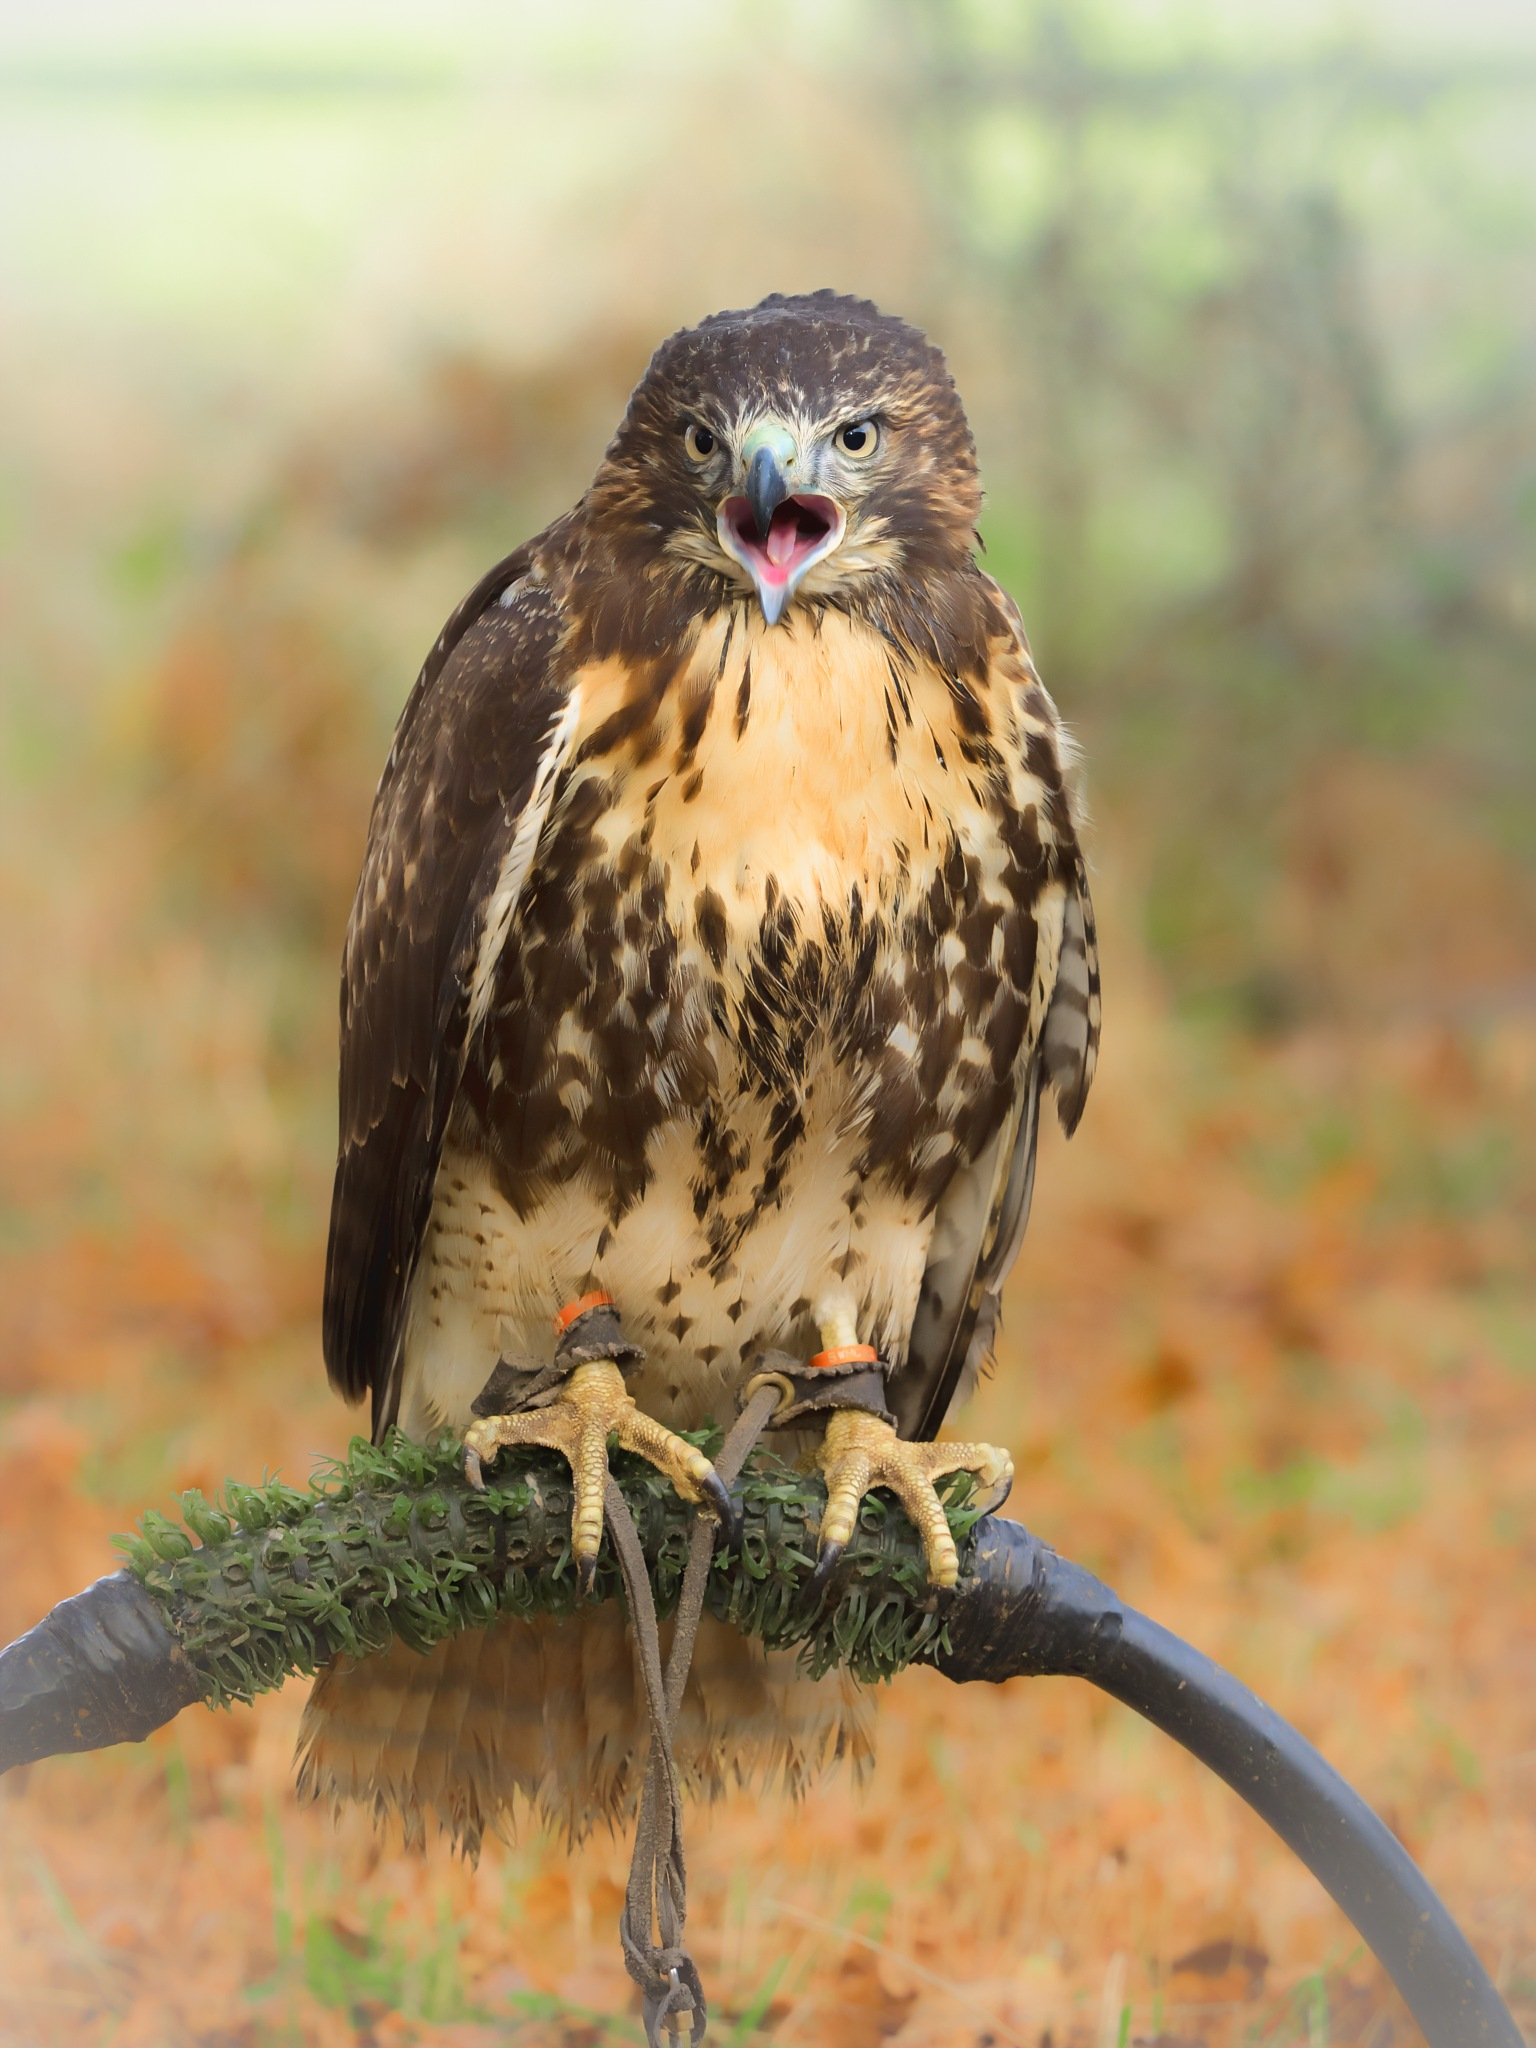 Red tailed buzzard by Sarah Walters